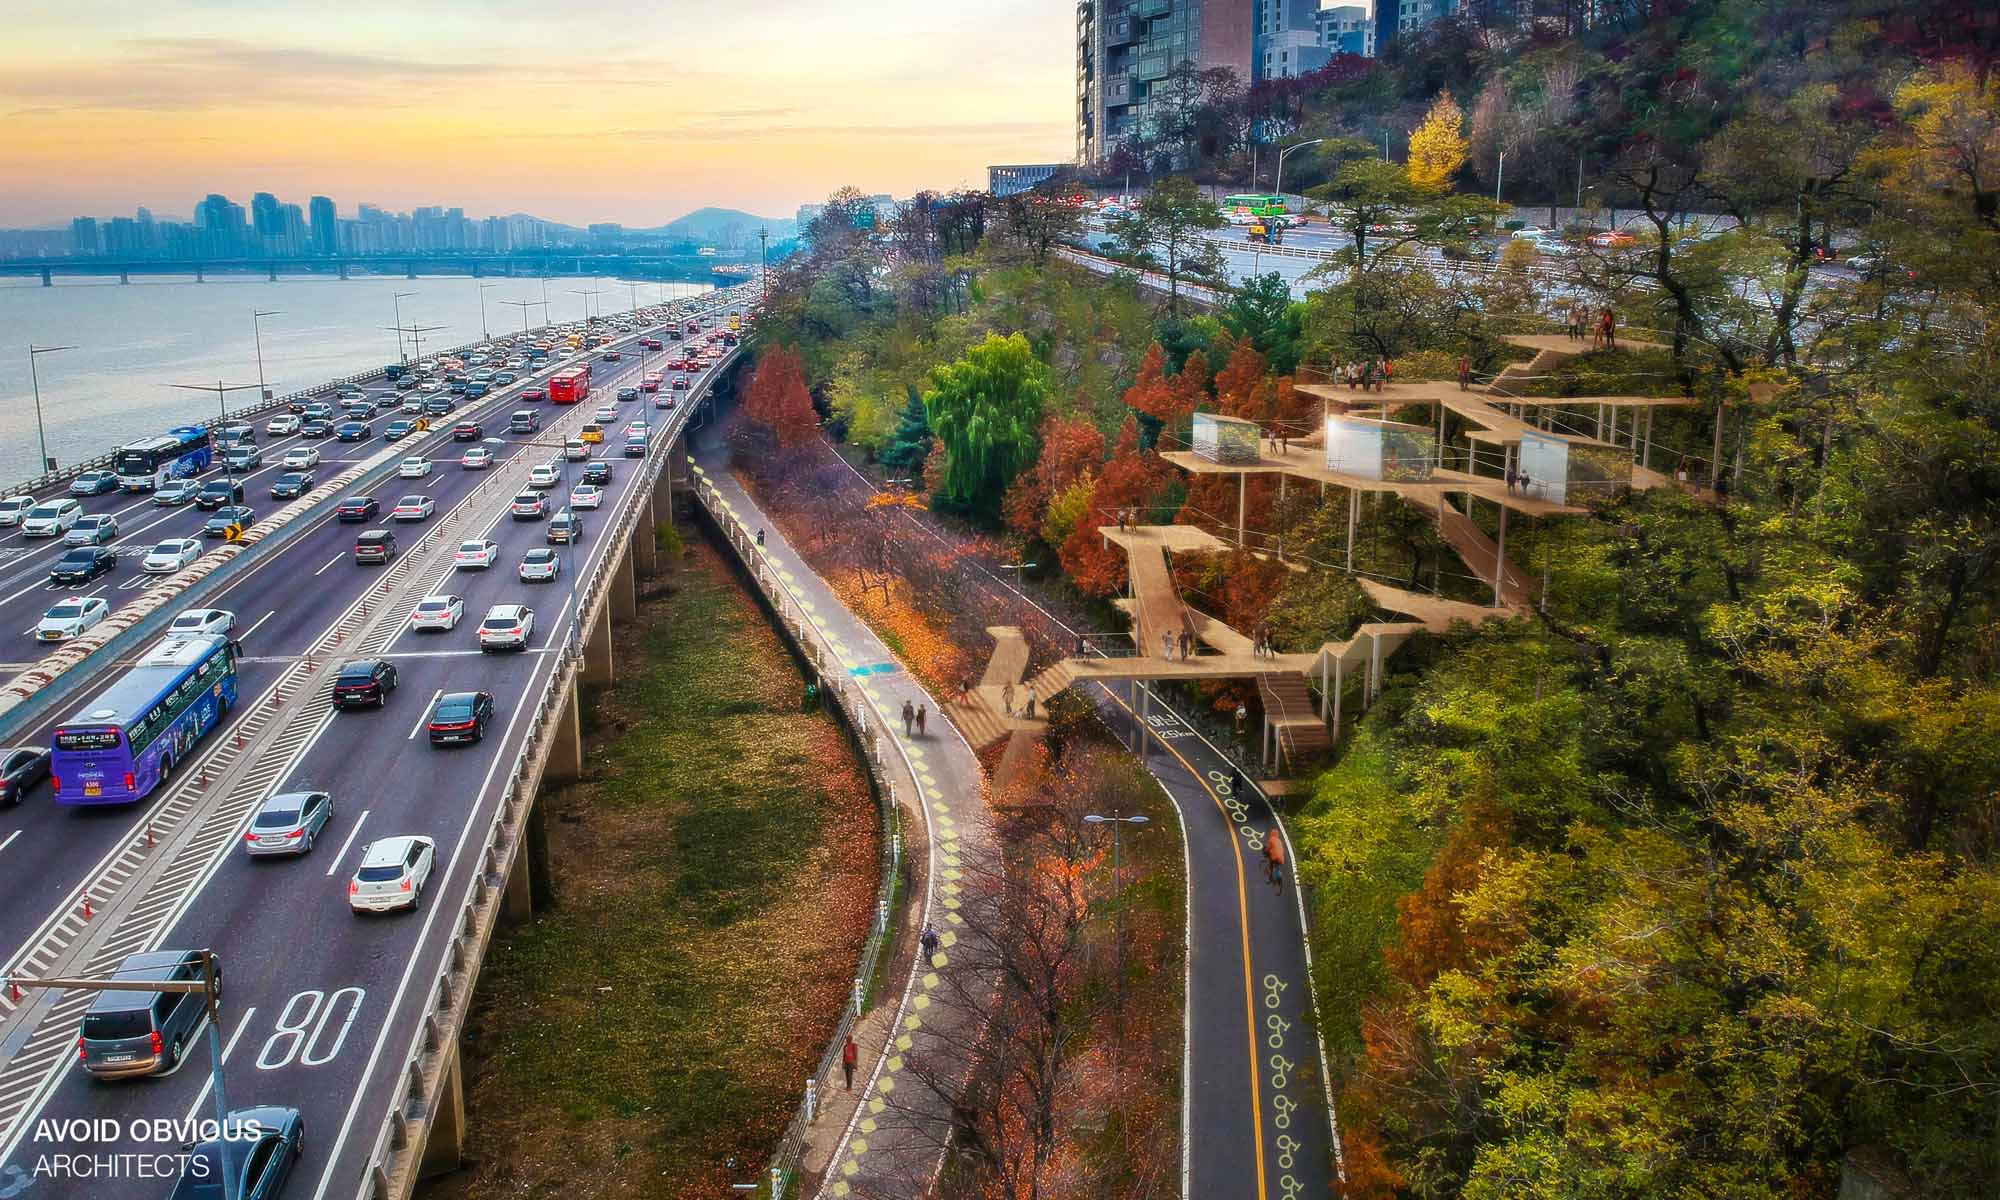 inclusive, network, hangang, river, park, interface, landscape, green, affordable, waterfront, riverfront, nature, ramp, architecture, city, planning, urban, sustainable, avoid obvious, architects, architecture, seoul, south korea, korea, design, idea